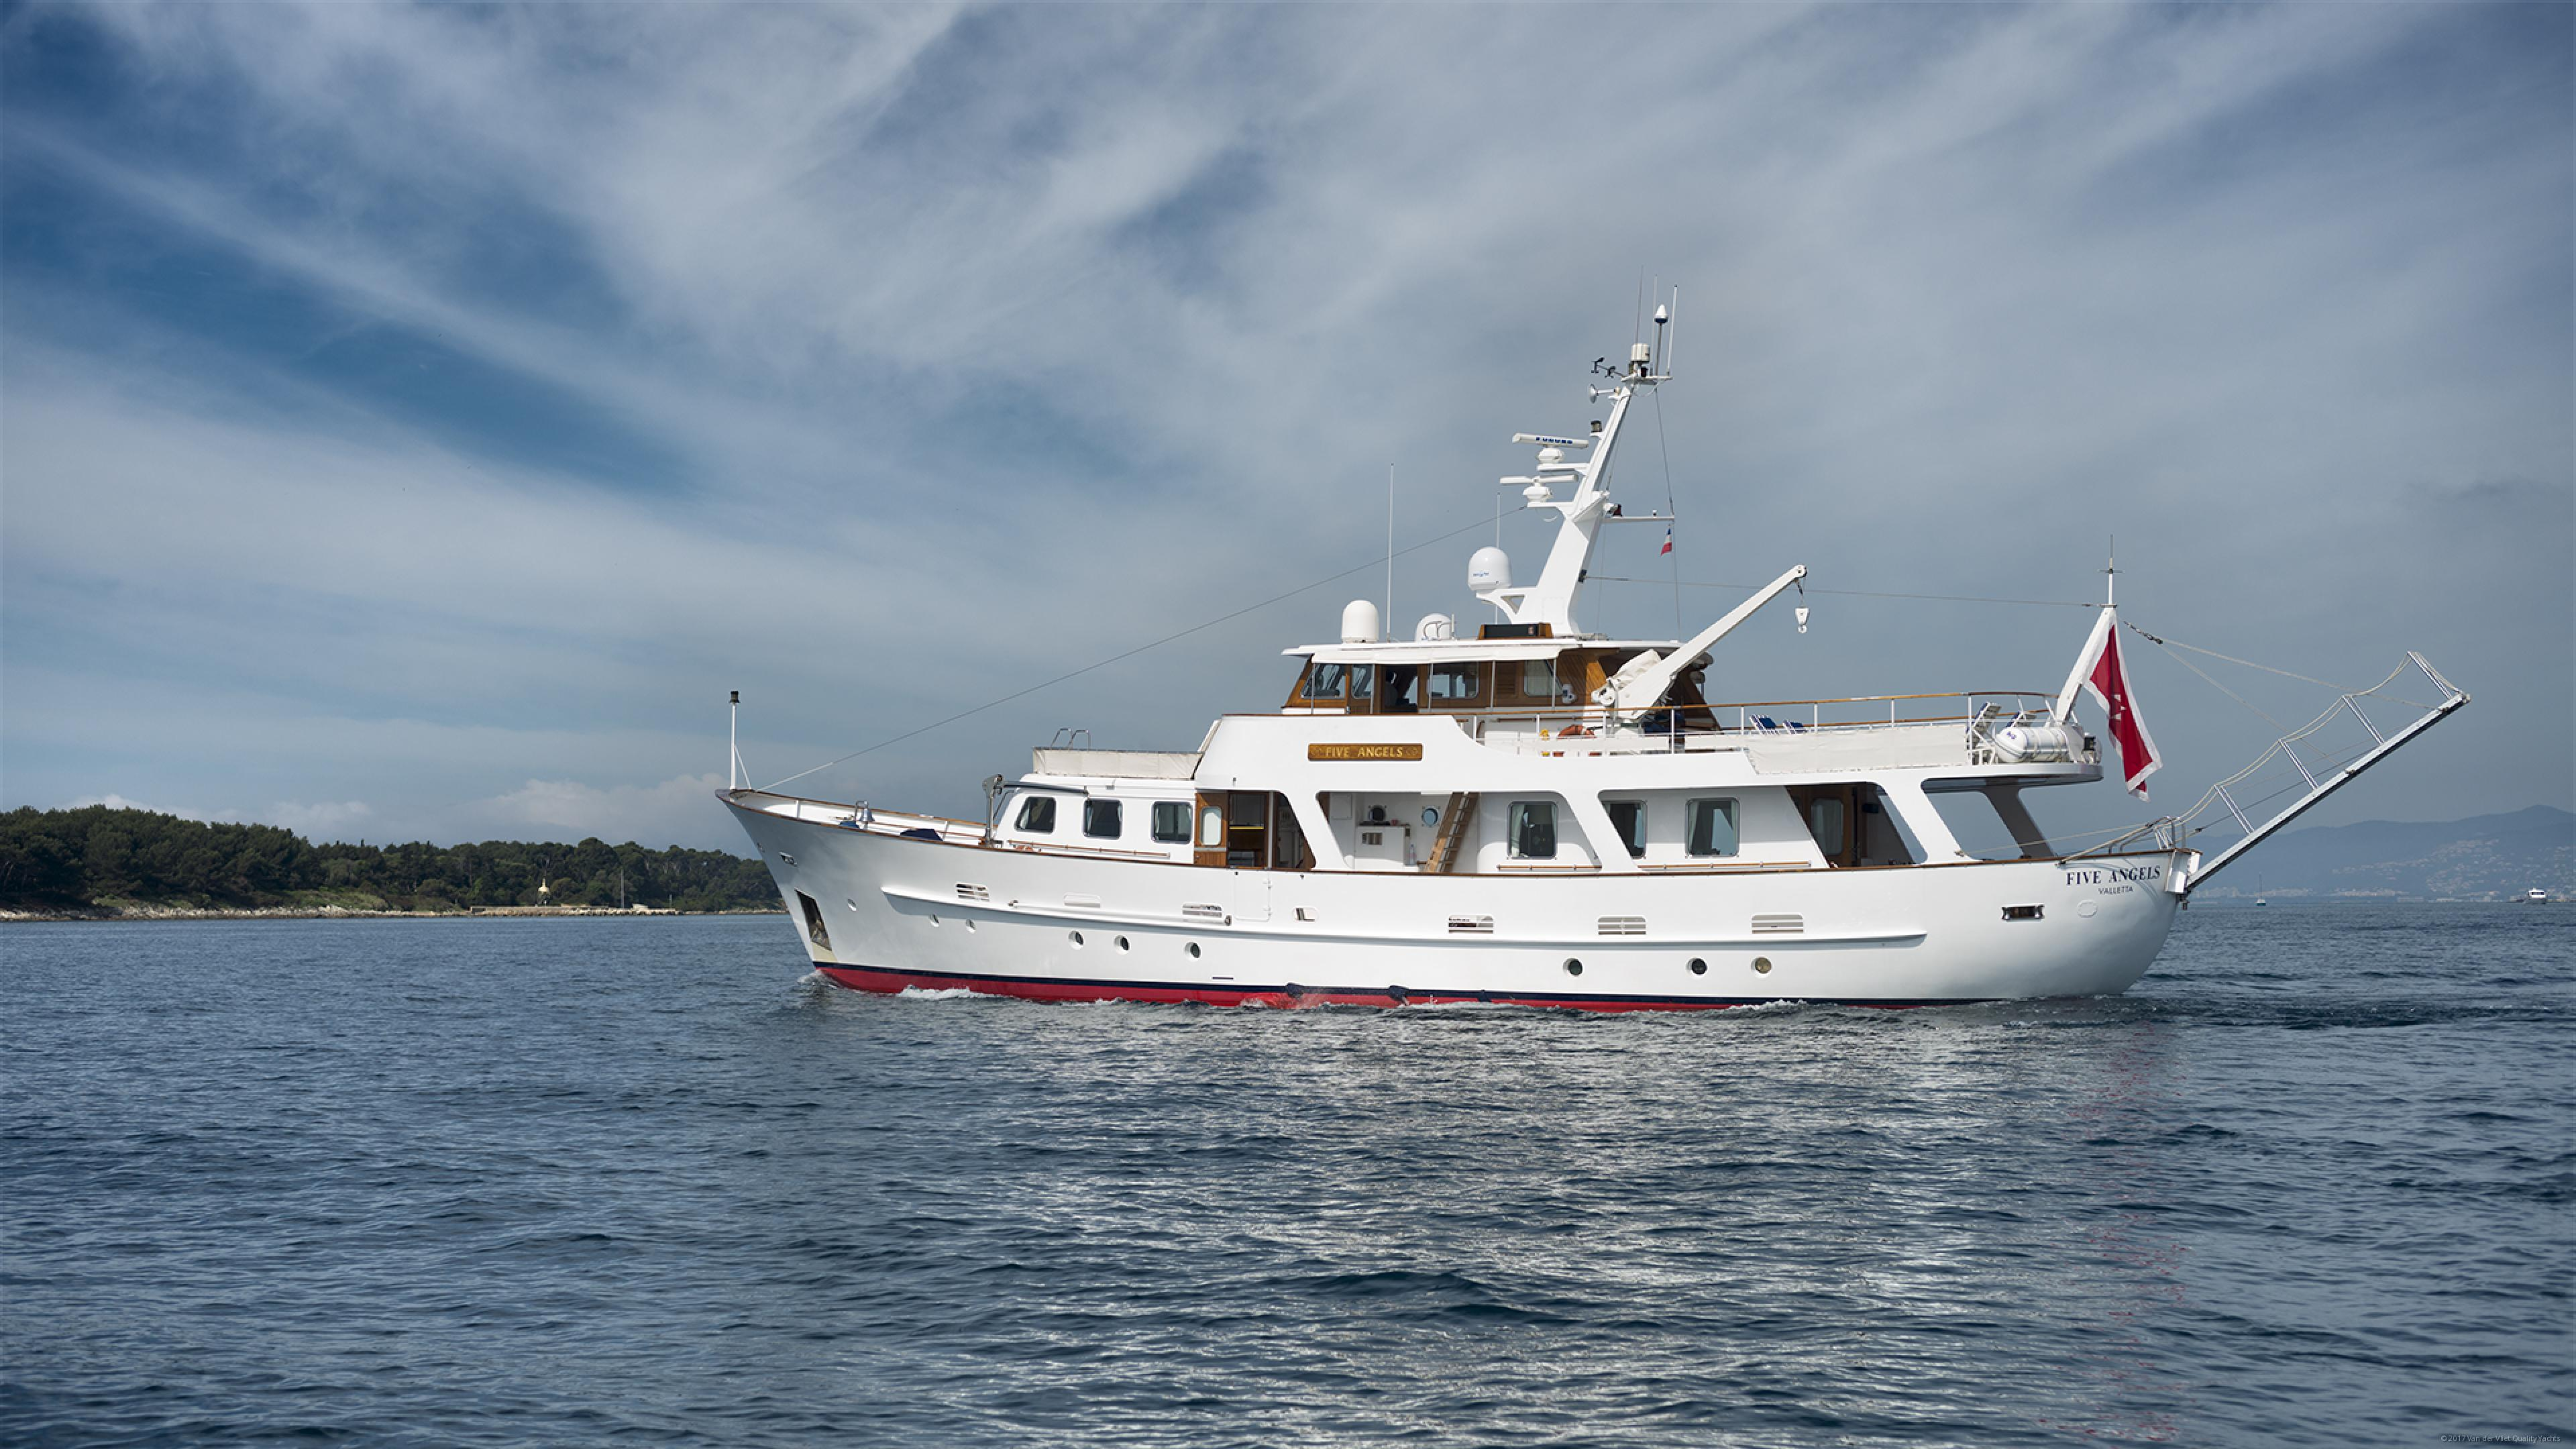 Cammenga 85 pacific class van der vliet quality yachts for Angel boats and motors